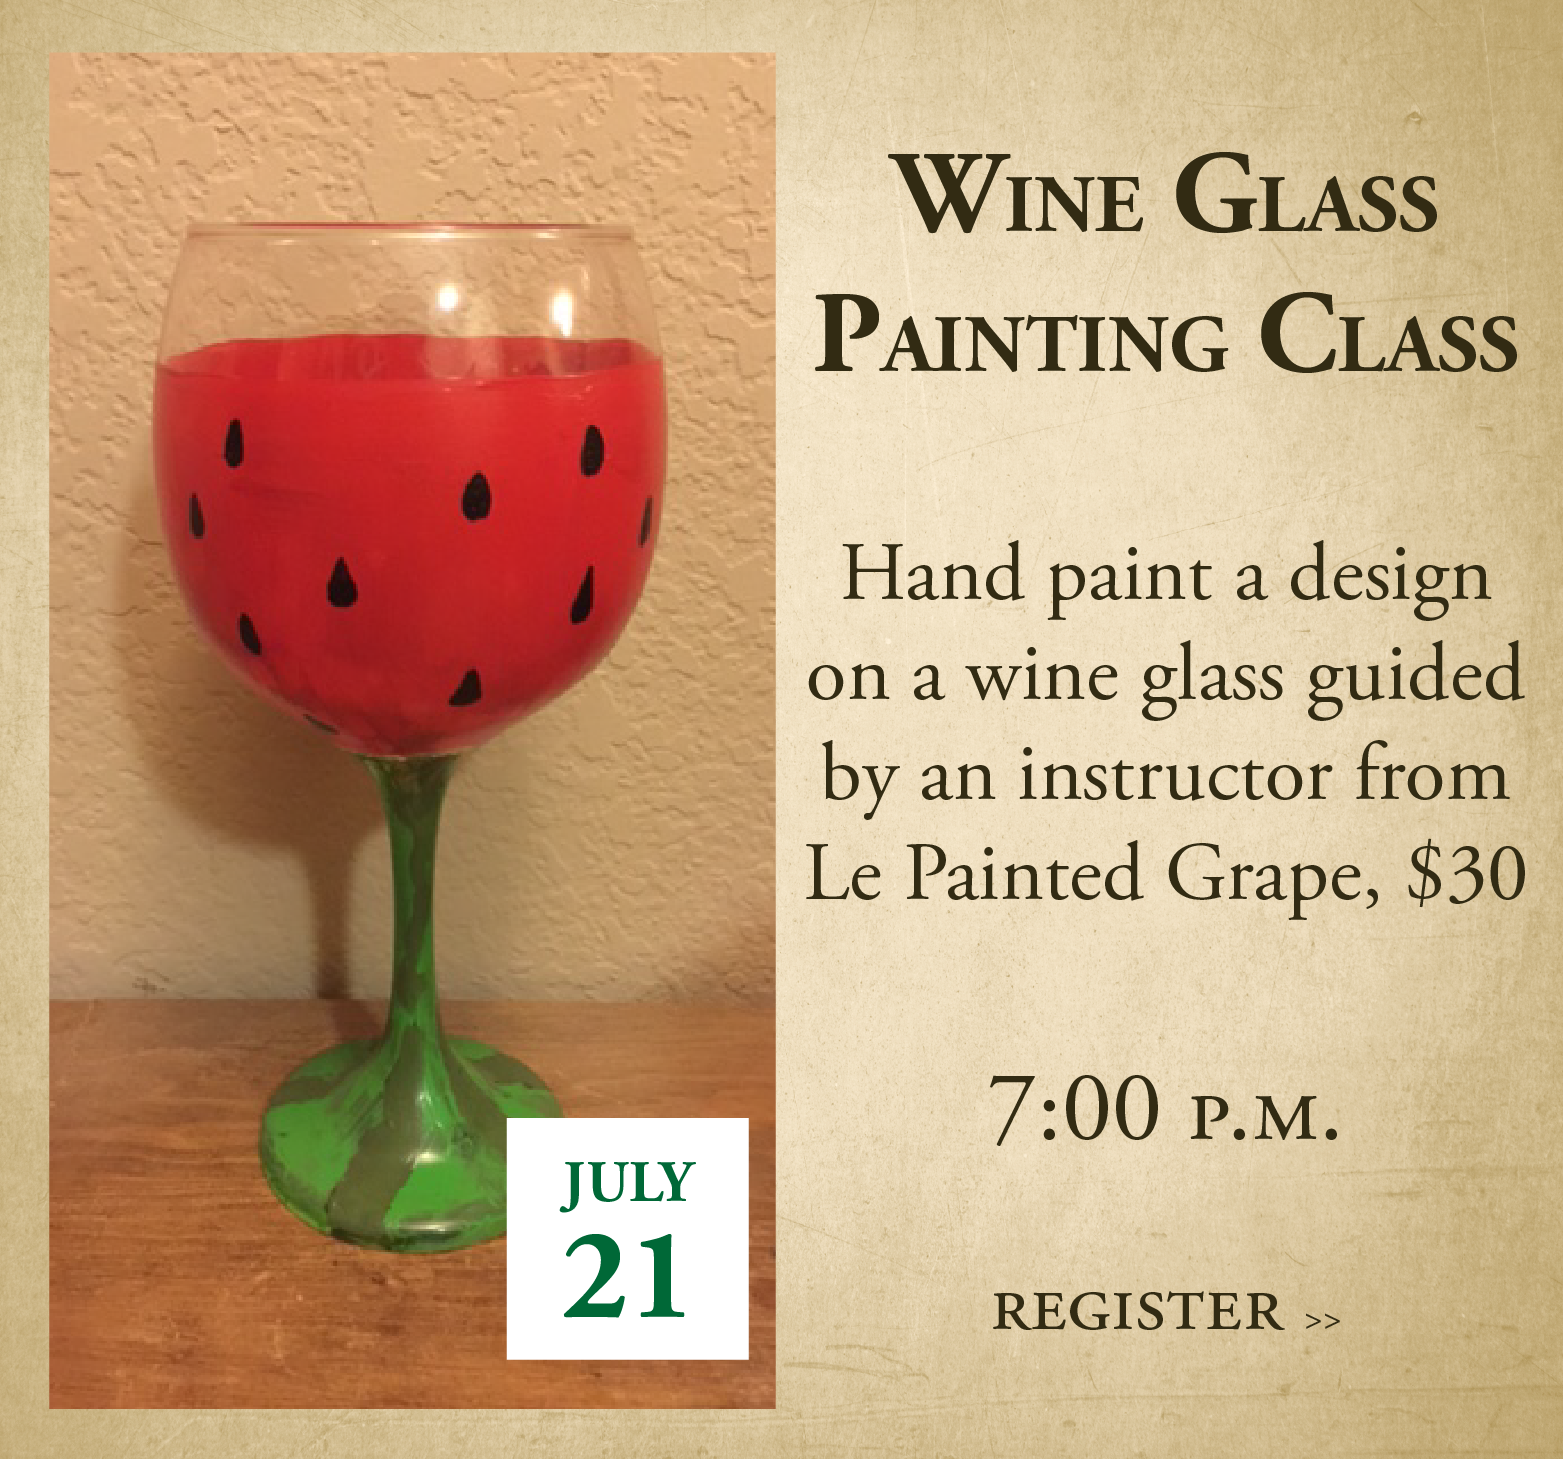 Image for wine glass painting event